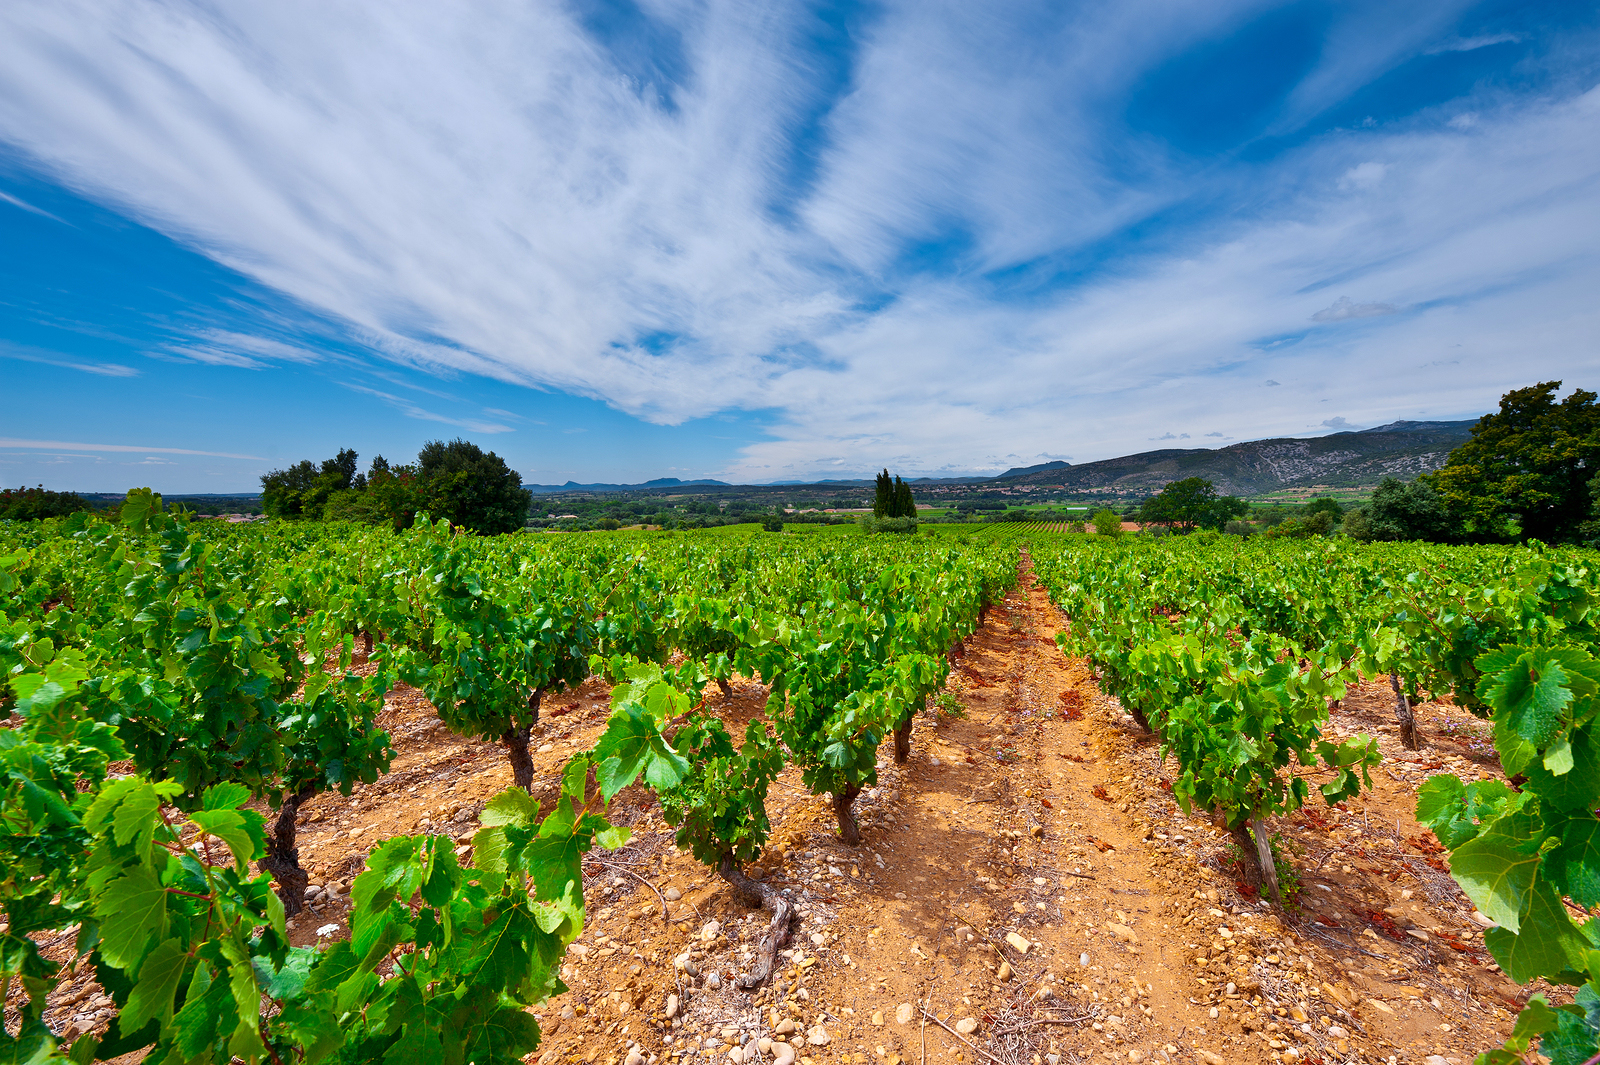 Young Vineyard in Southern France Region Rhone-Alpes